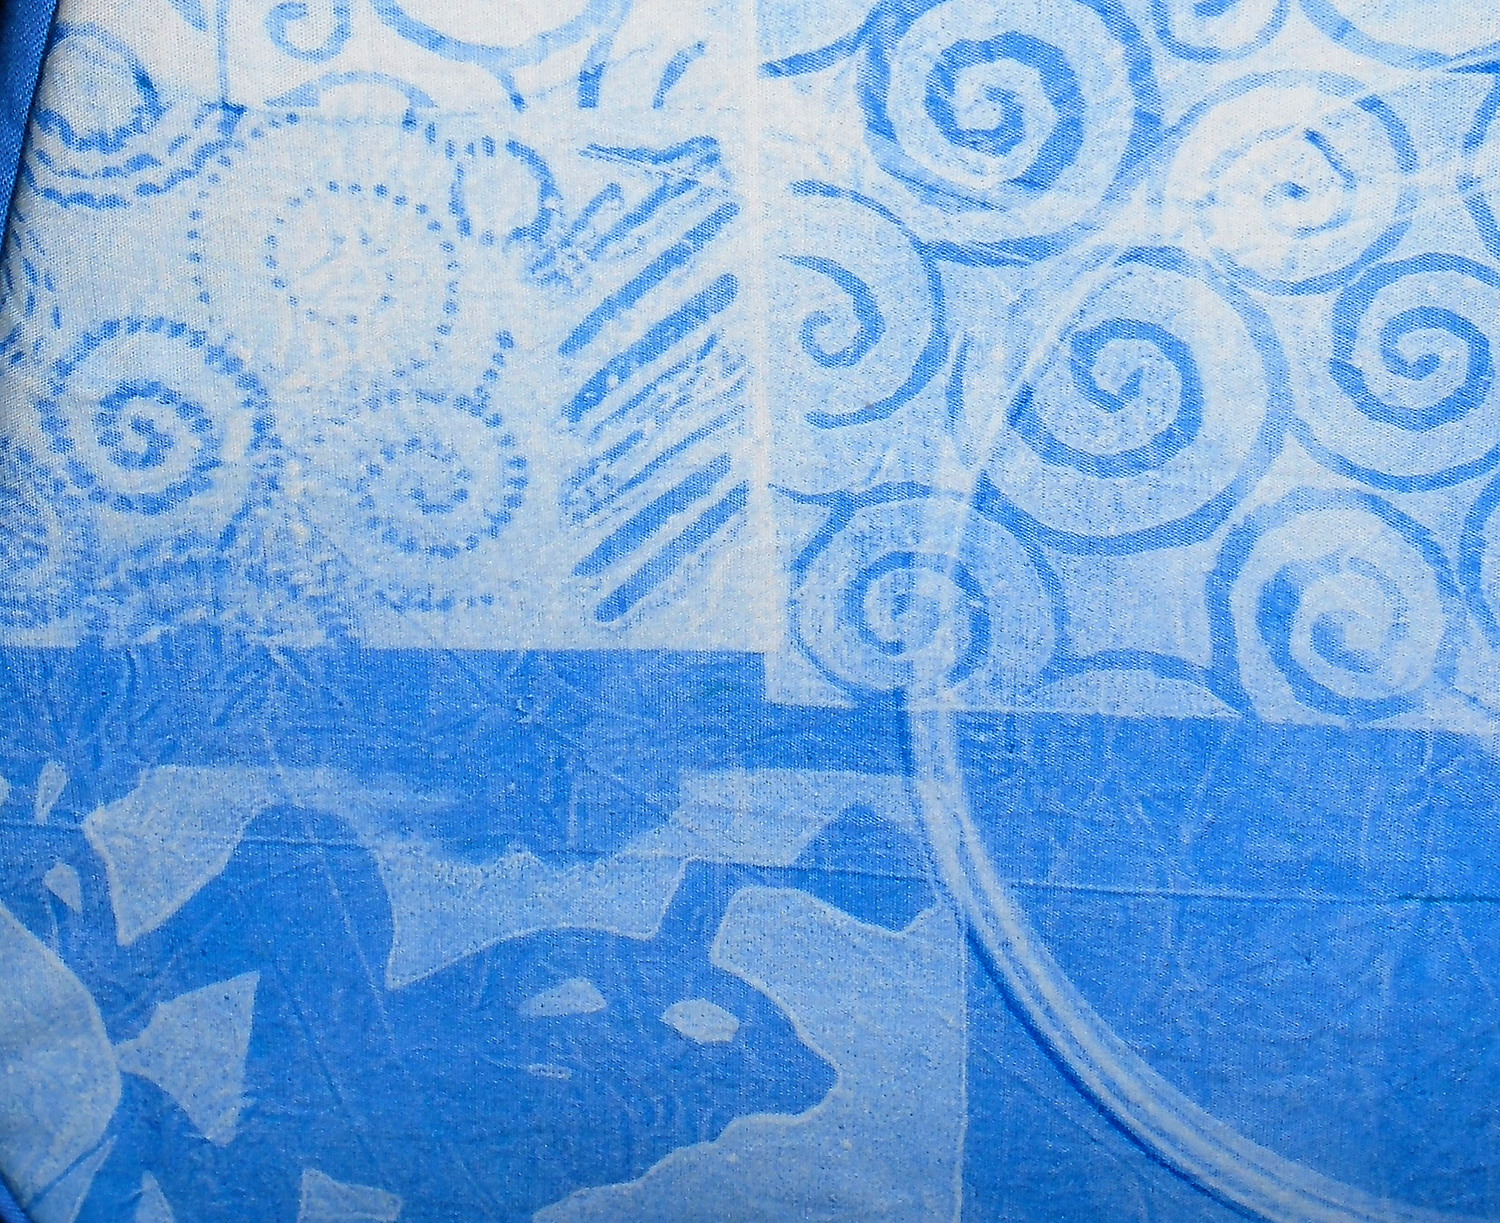 Detail view of monoprinted design on fabric. Frog motif at lower left.